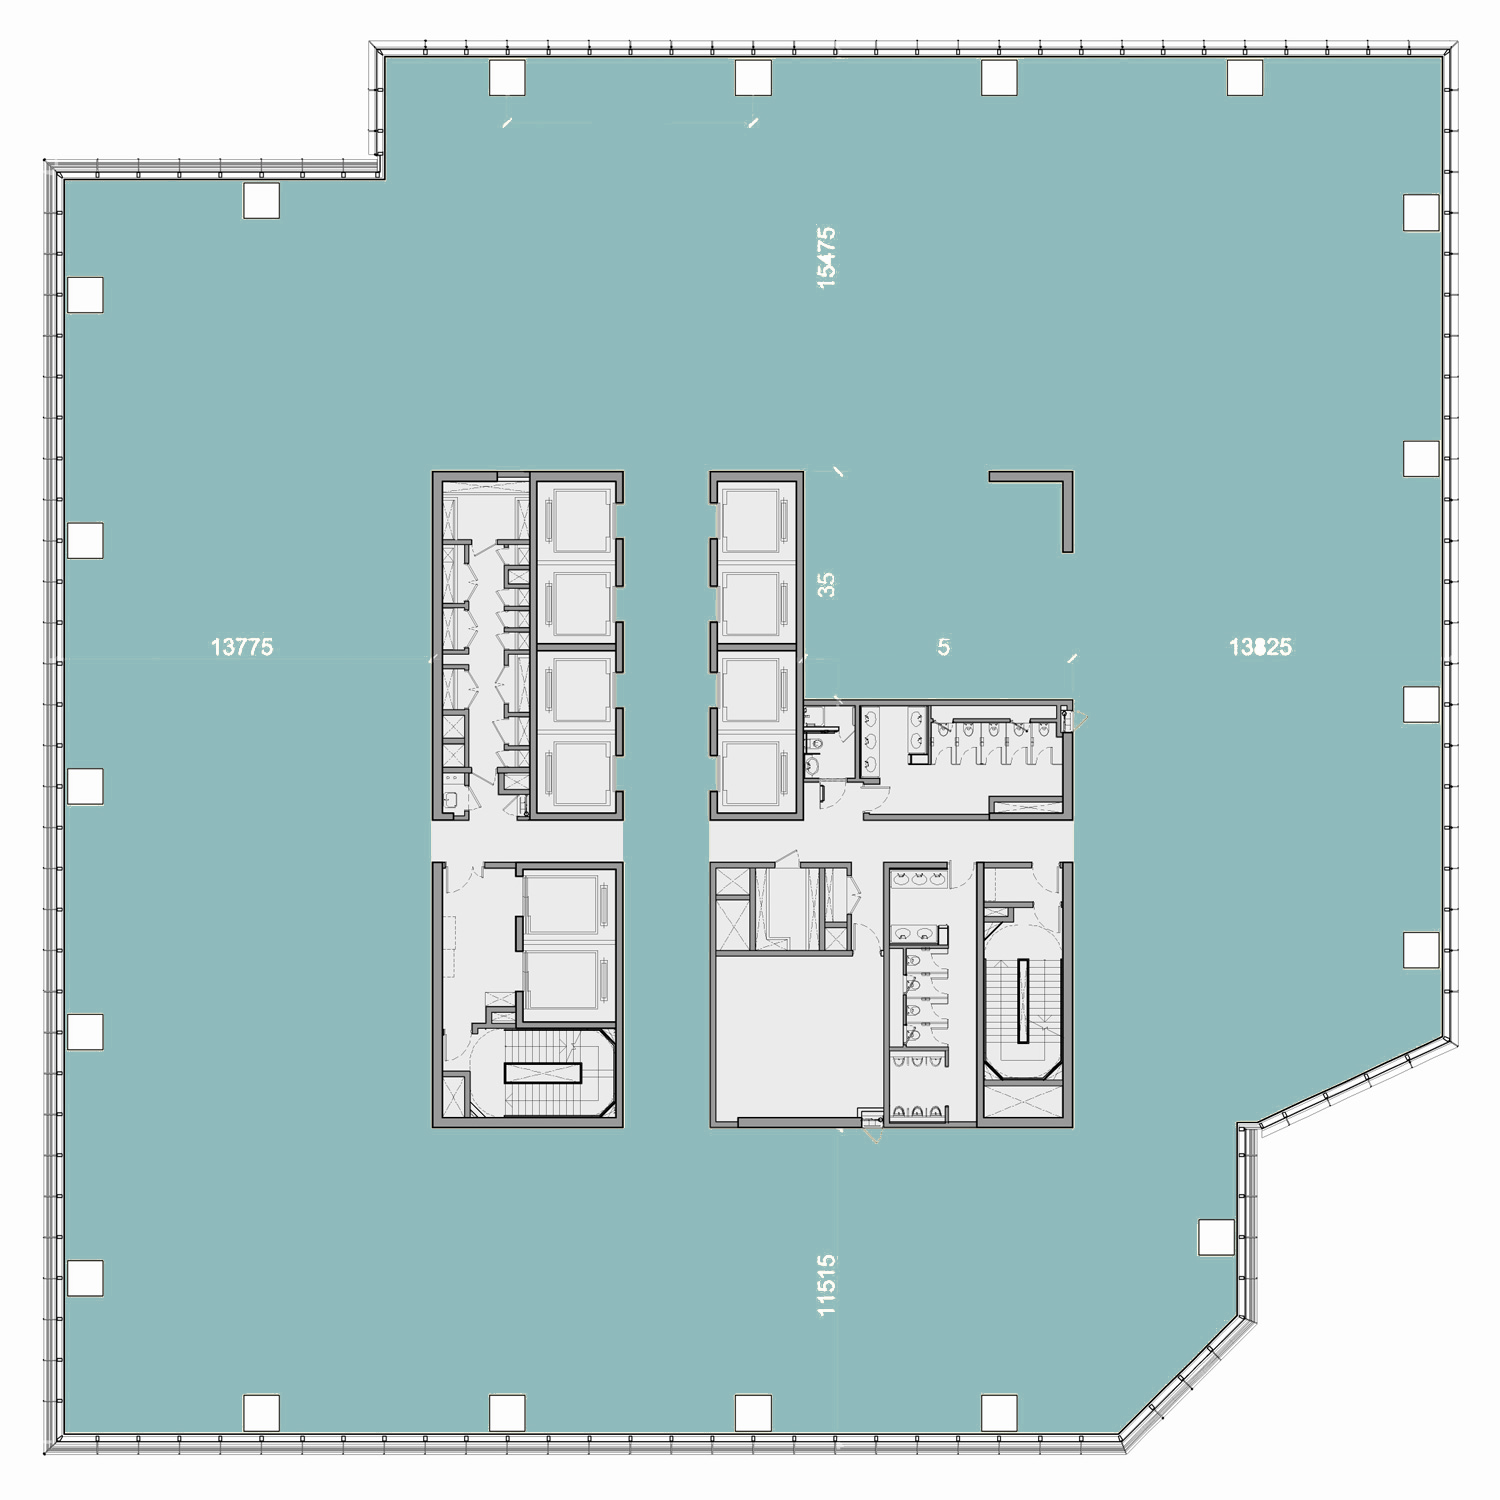 Marina Bay Financial Centre Floor Plan